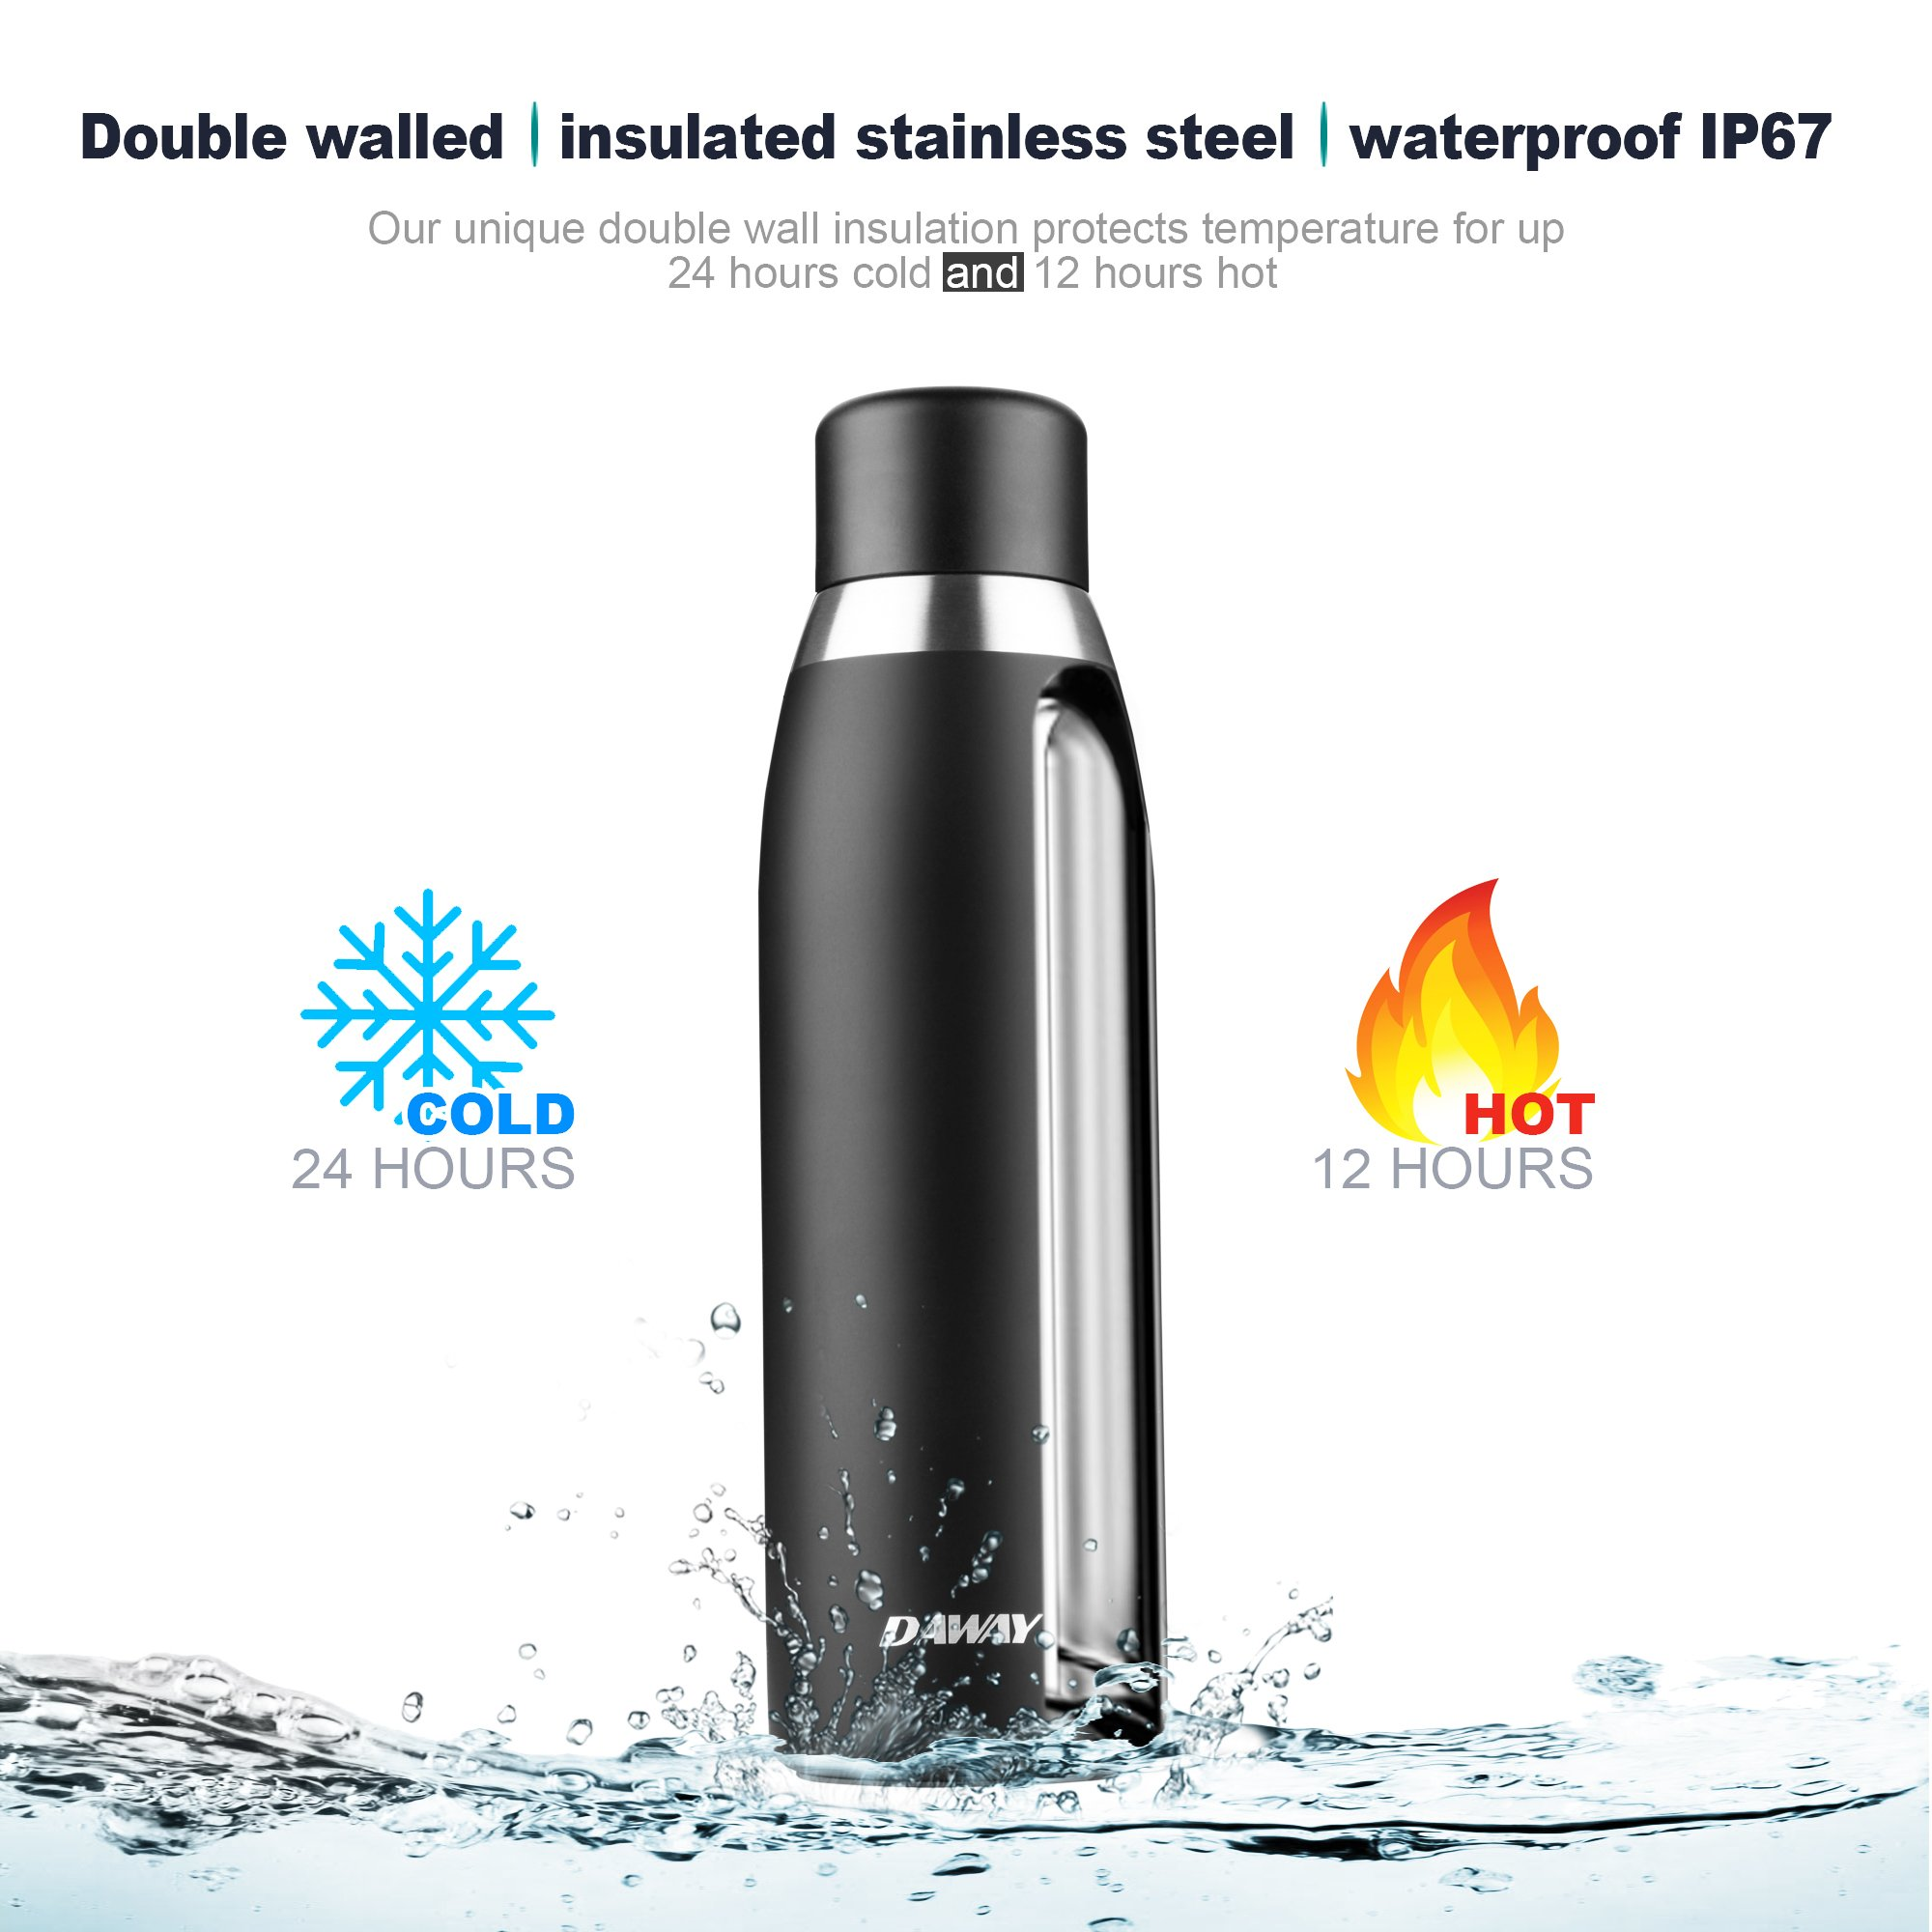 Reusable Smart Water Bottle Rechargeable - DAWAY G3 Stainless Steel Vacuum Insulated Water Bottle, Leak Proof, Double Wall, Keep Drink Hot & Cold, Temperature Display, Alarm Reminder, with Holder Bag by DAWAY (Image #2)